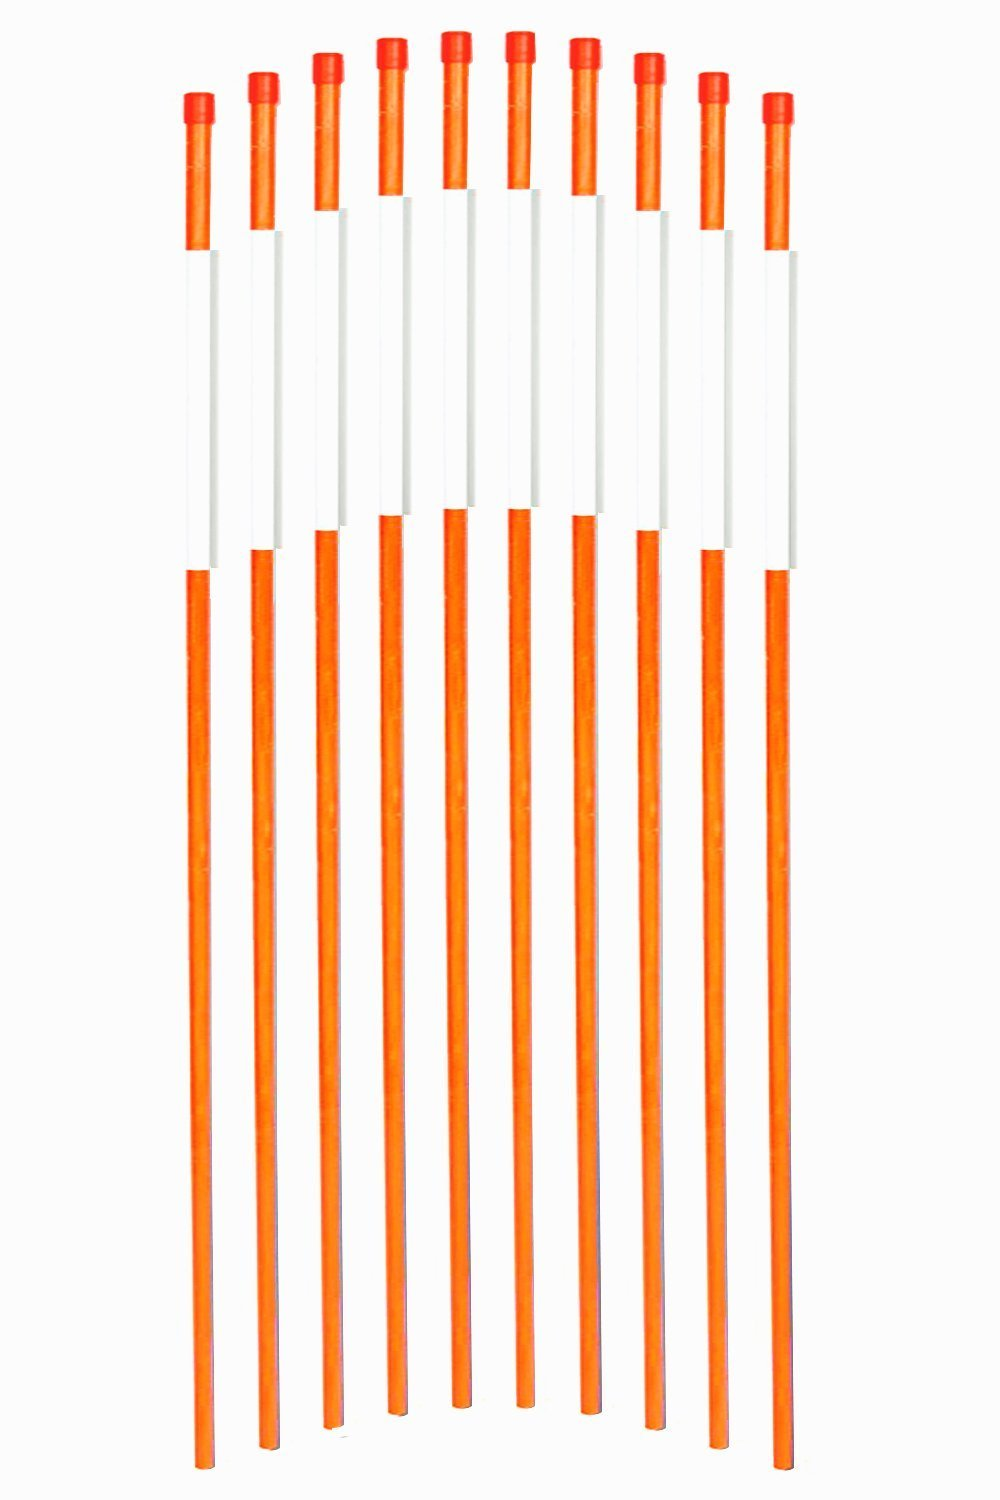 FiberMarker 60-Inch Reflective Driveway Markers Orange 20-Pack 5/16-Inch Dia Solid Driveway Poles for Easy Visibility at Night ... by FiberMarker (Image #1)